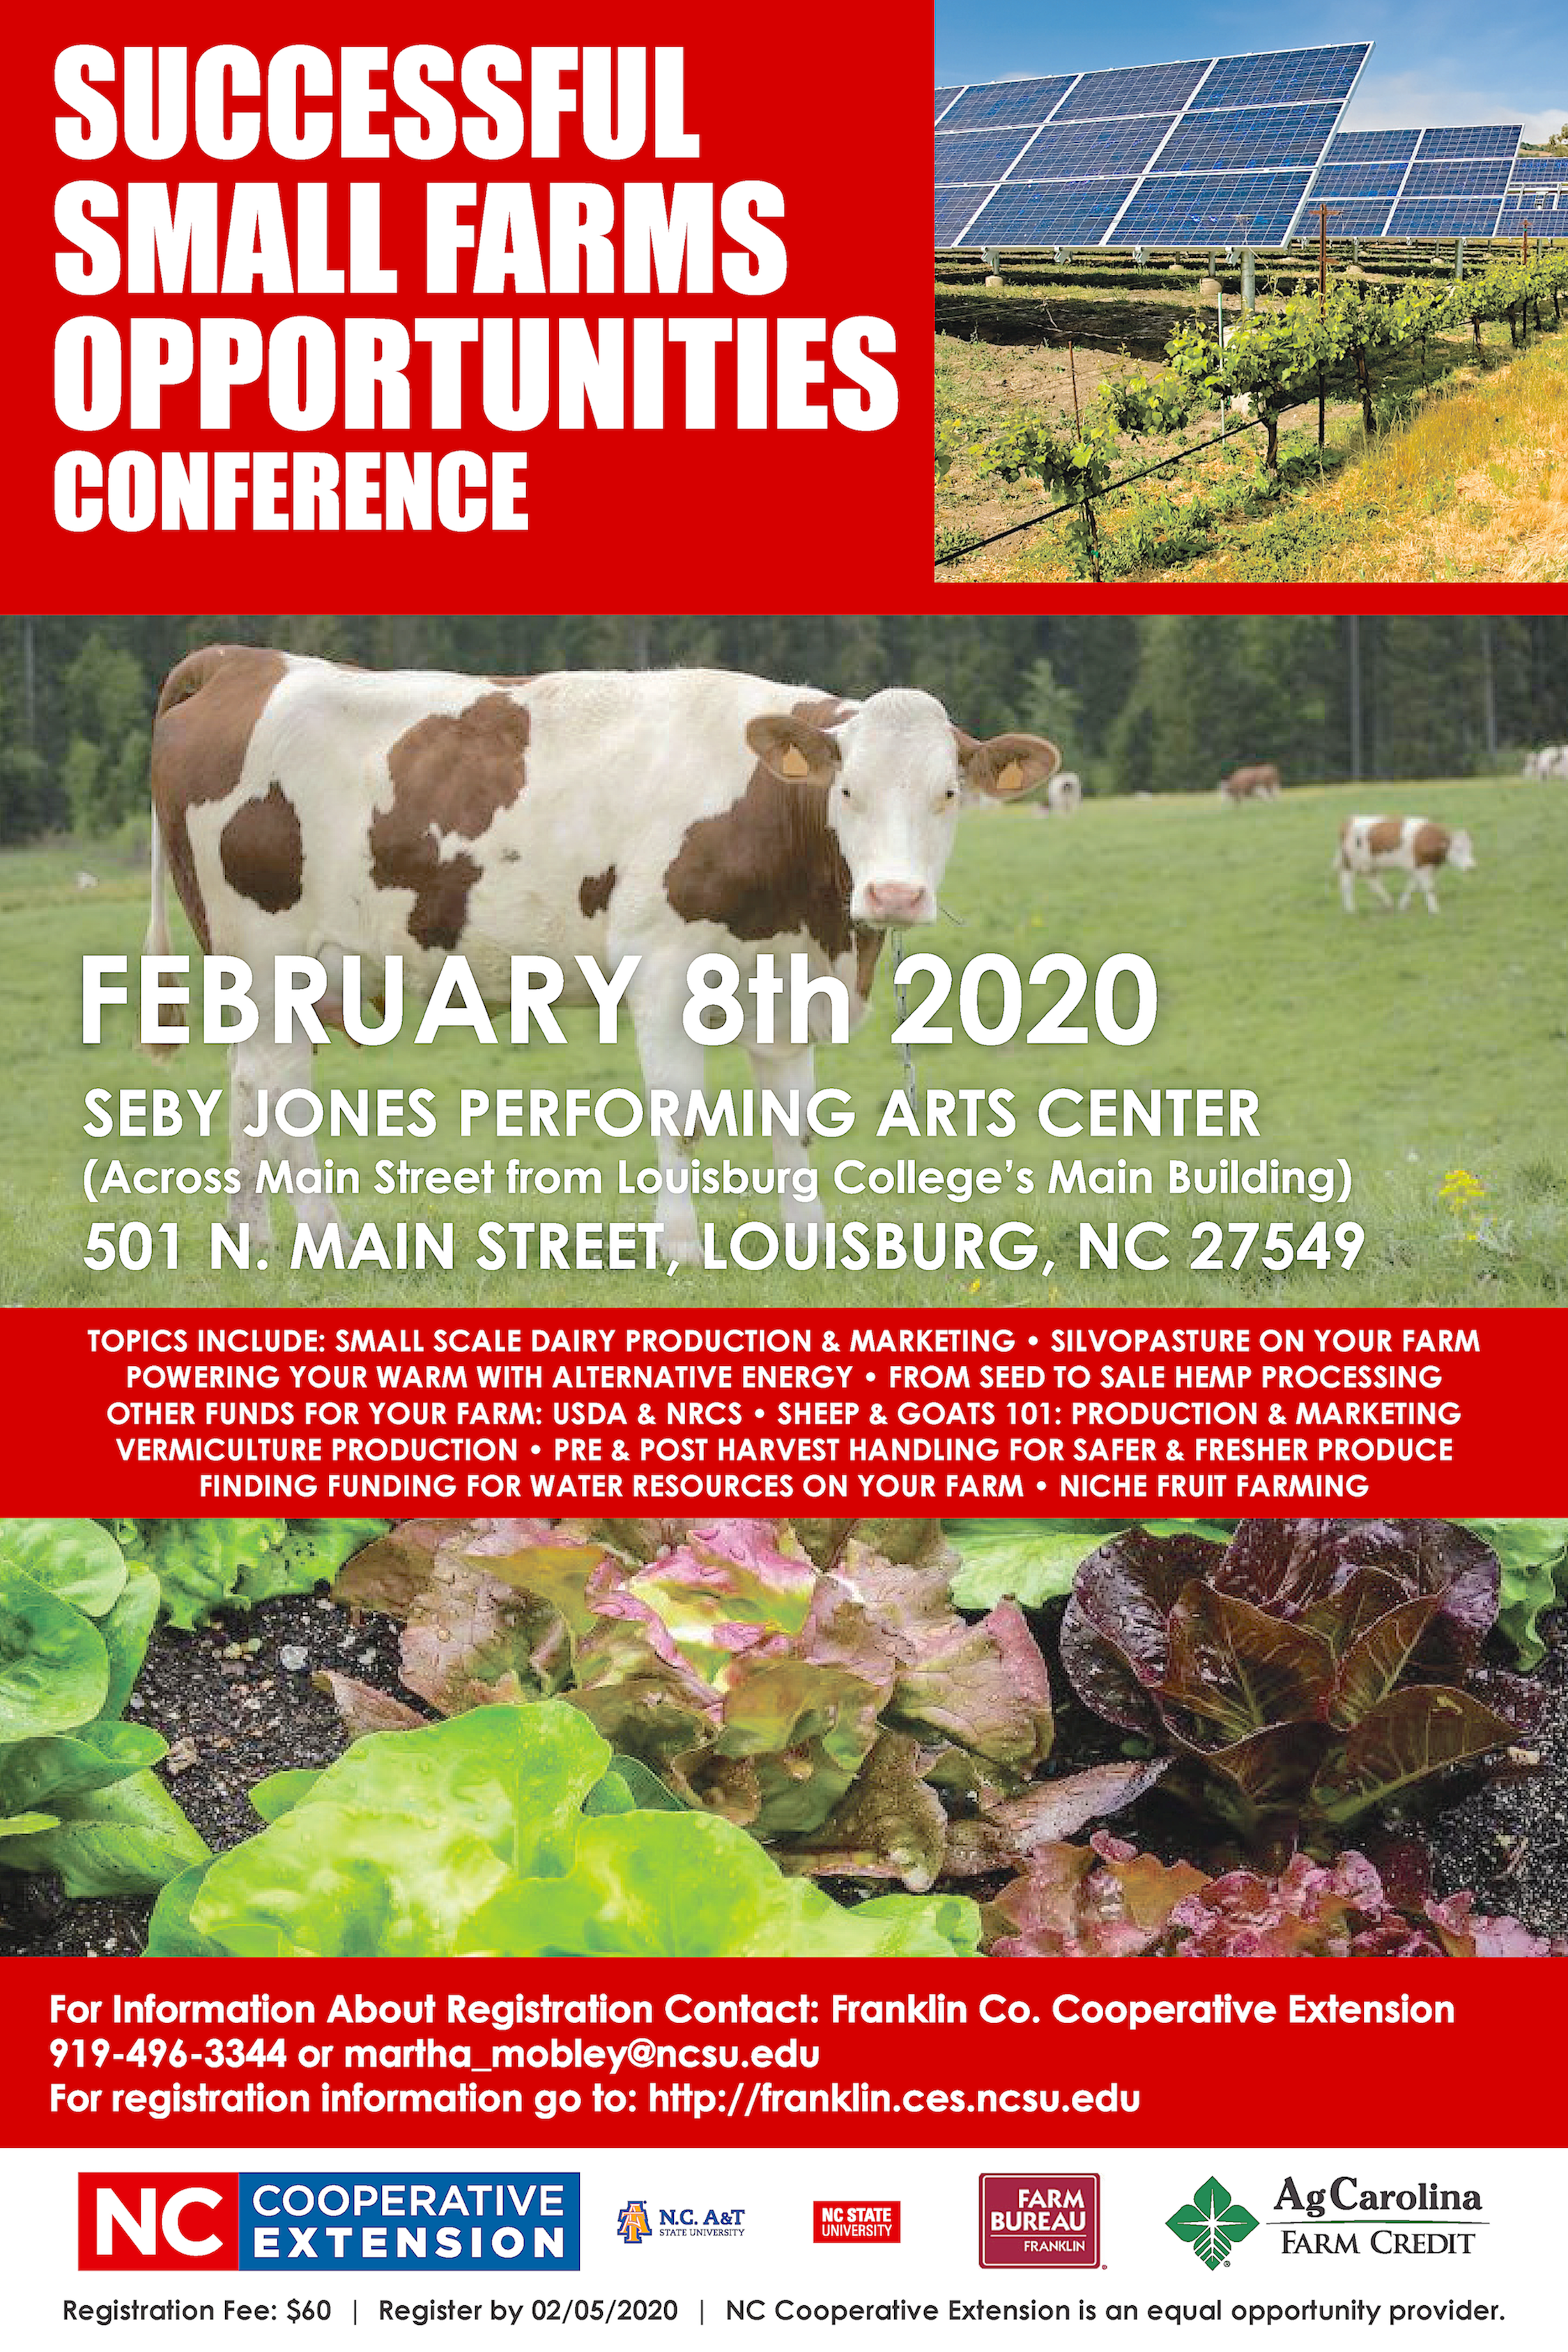 image if 2020 Successful Small Farms Opportunities Conference poster with registration information, location, breakout sessions topics, and pictures of cows ina pasture, varities of lettuce growing, and a solar farm.